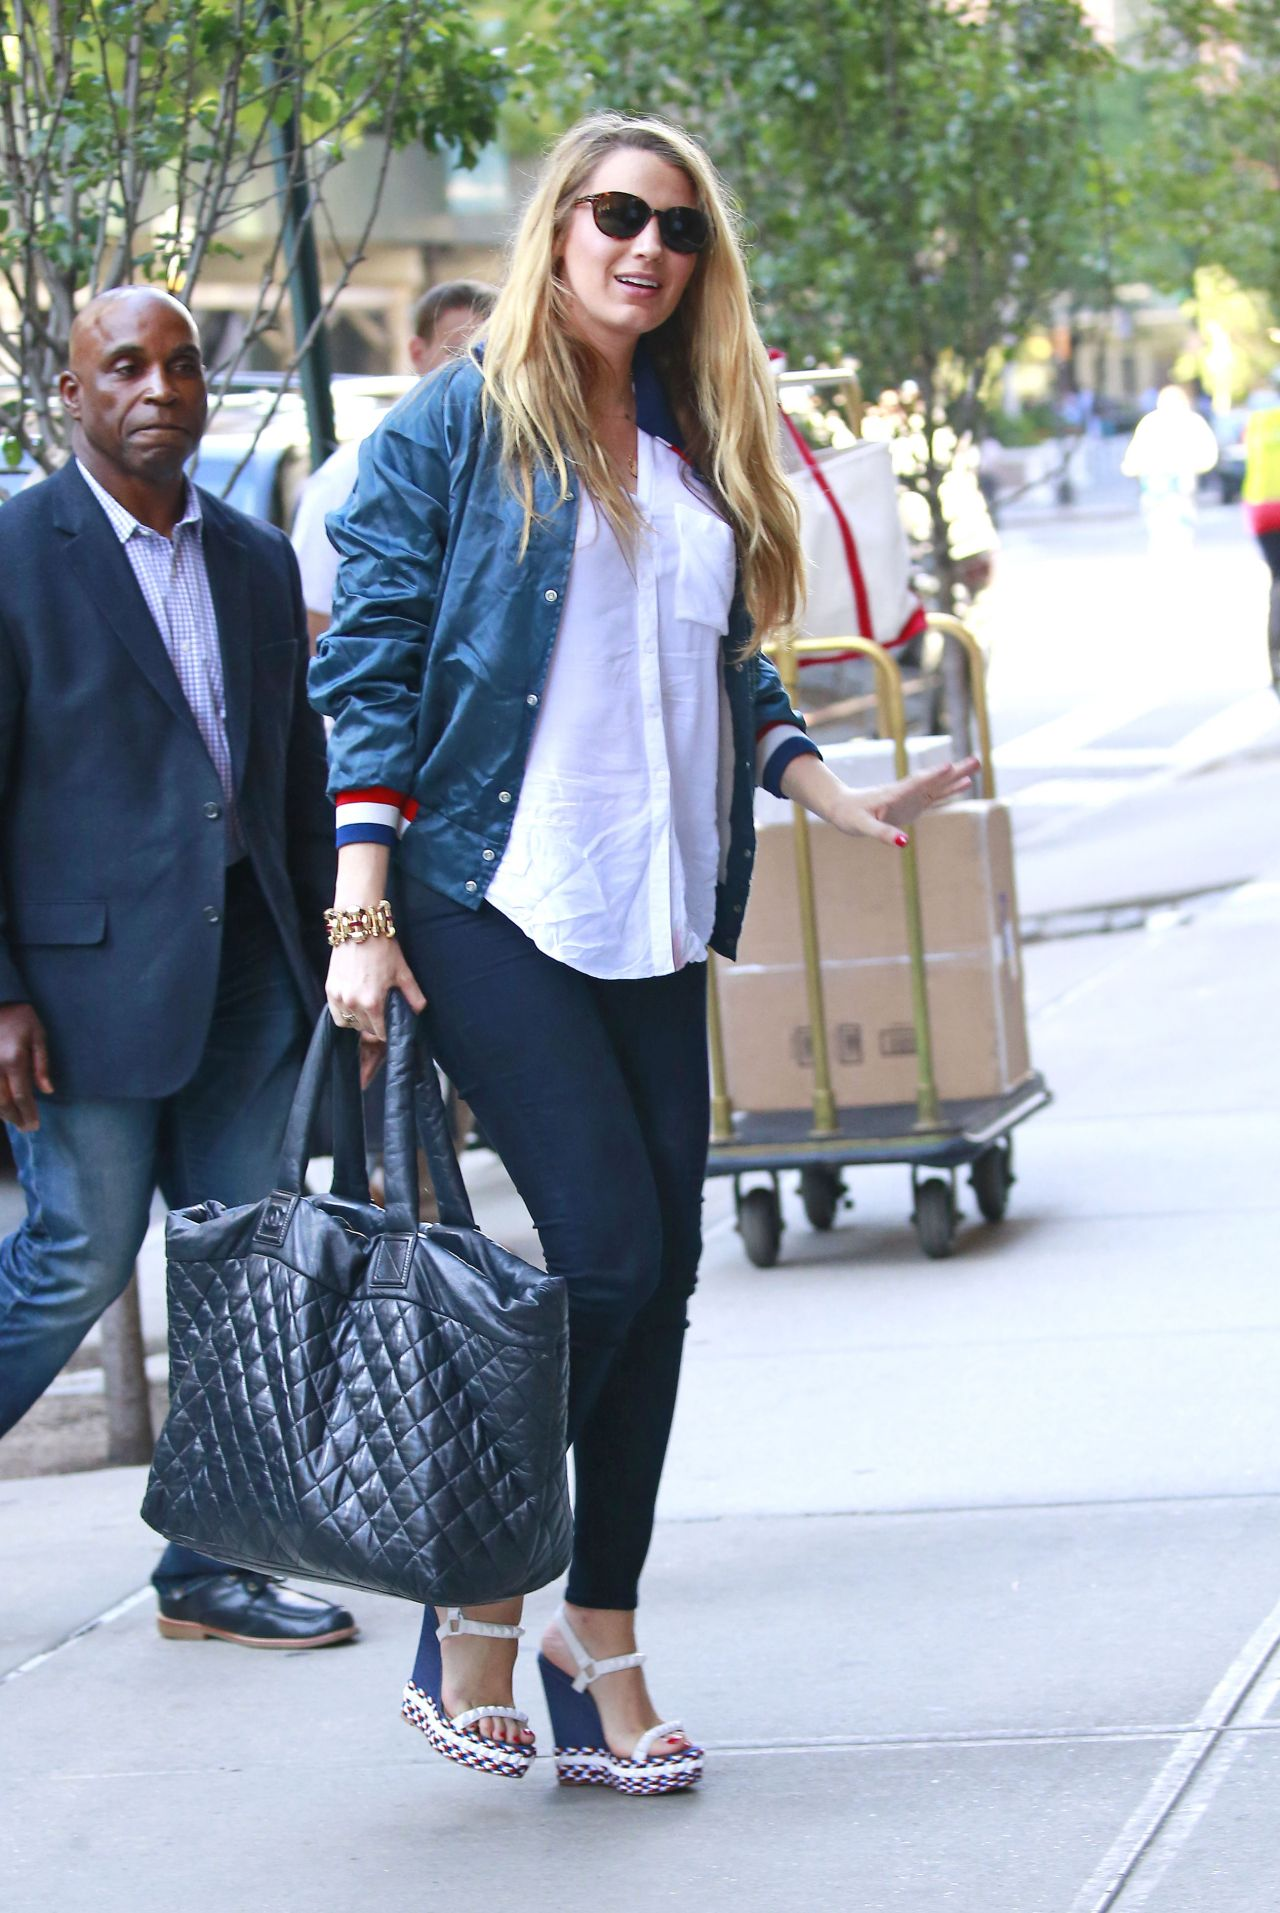 blake lively casual style at her hotel in nyc 7112016